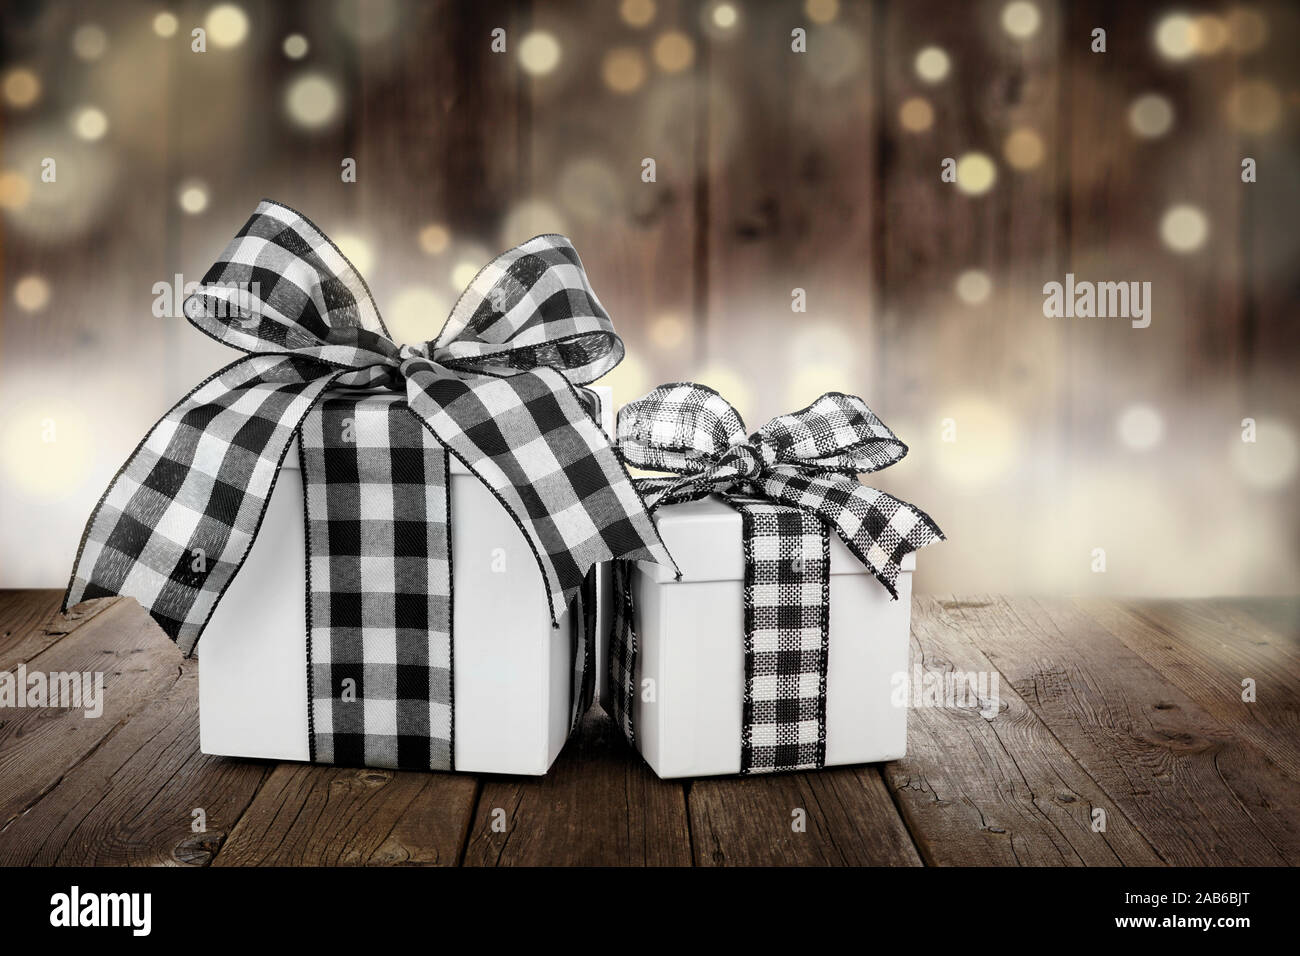 rustic christmas gifts with black and white buffalo plaid check ribbon side view with a dark wood and twinkling light background 2AB6BJT